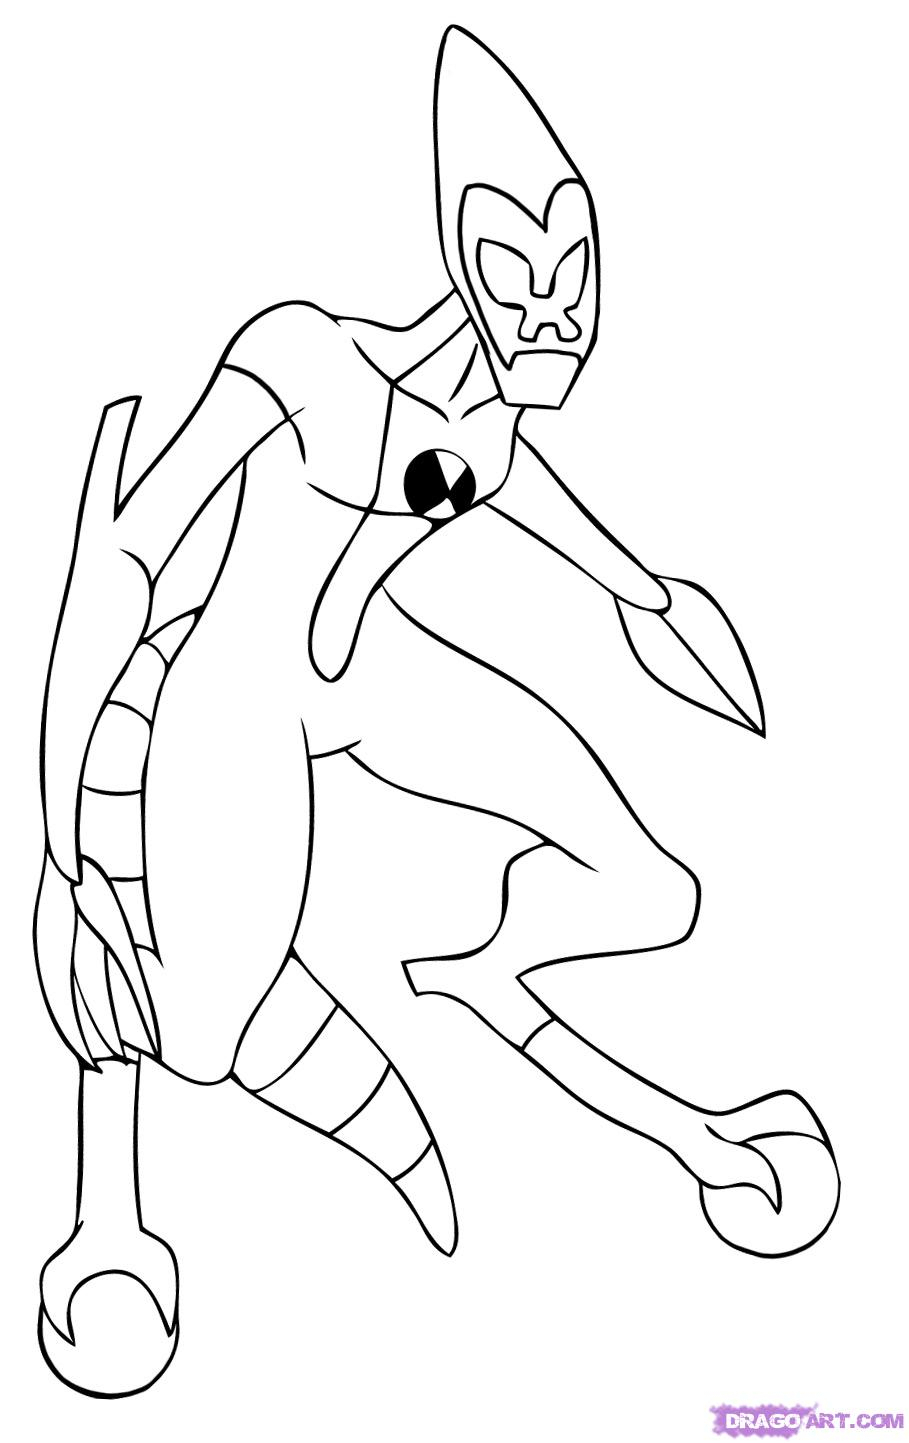 909x1443 Ben 10 Pictures For Drawing Ben 10 Way Big Coloring Page Free